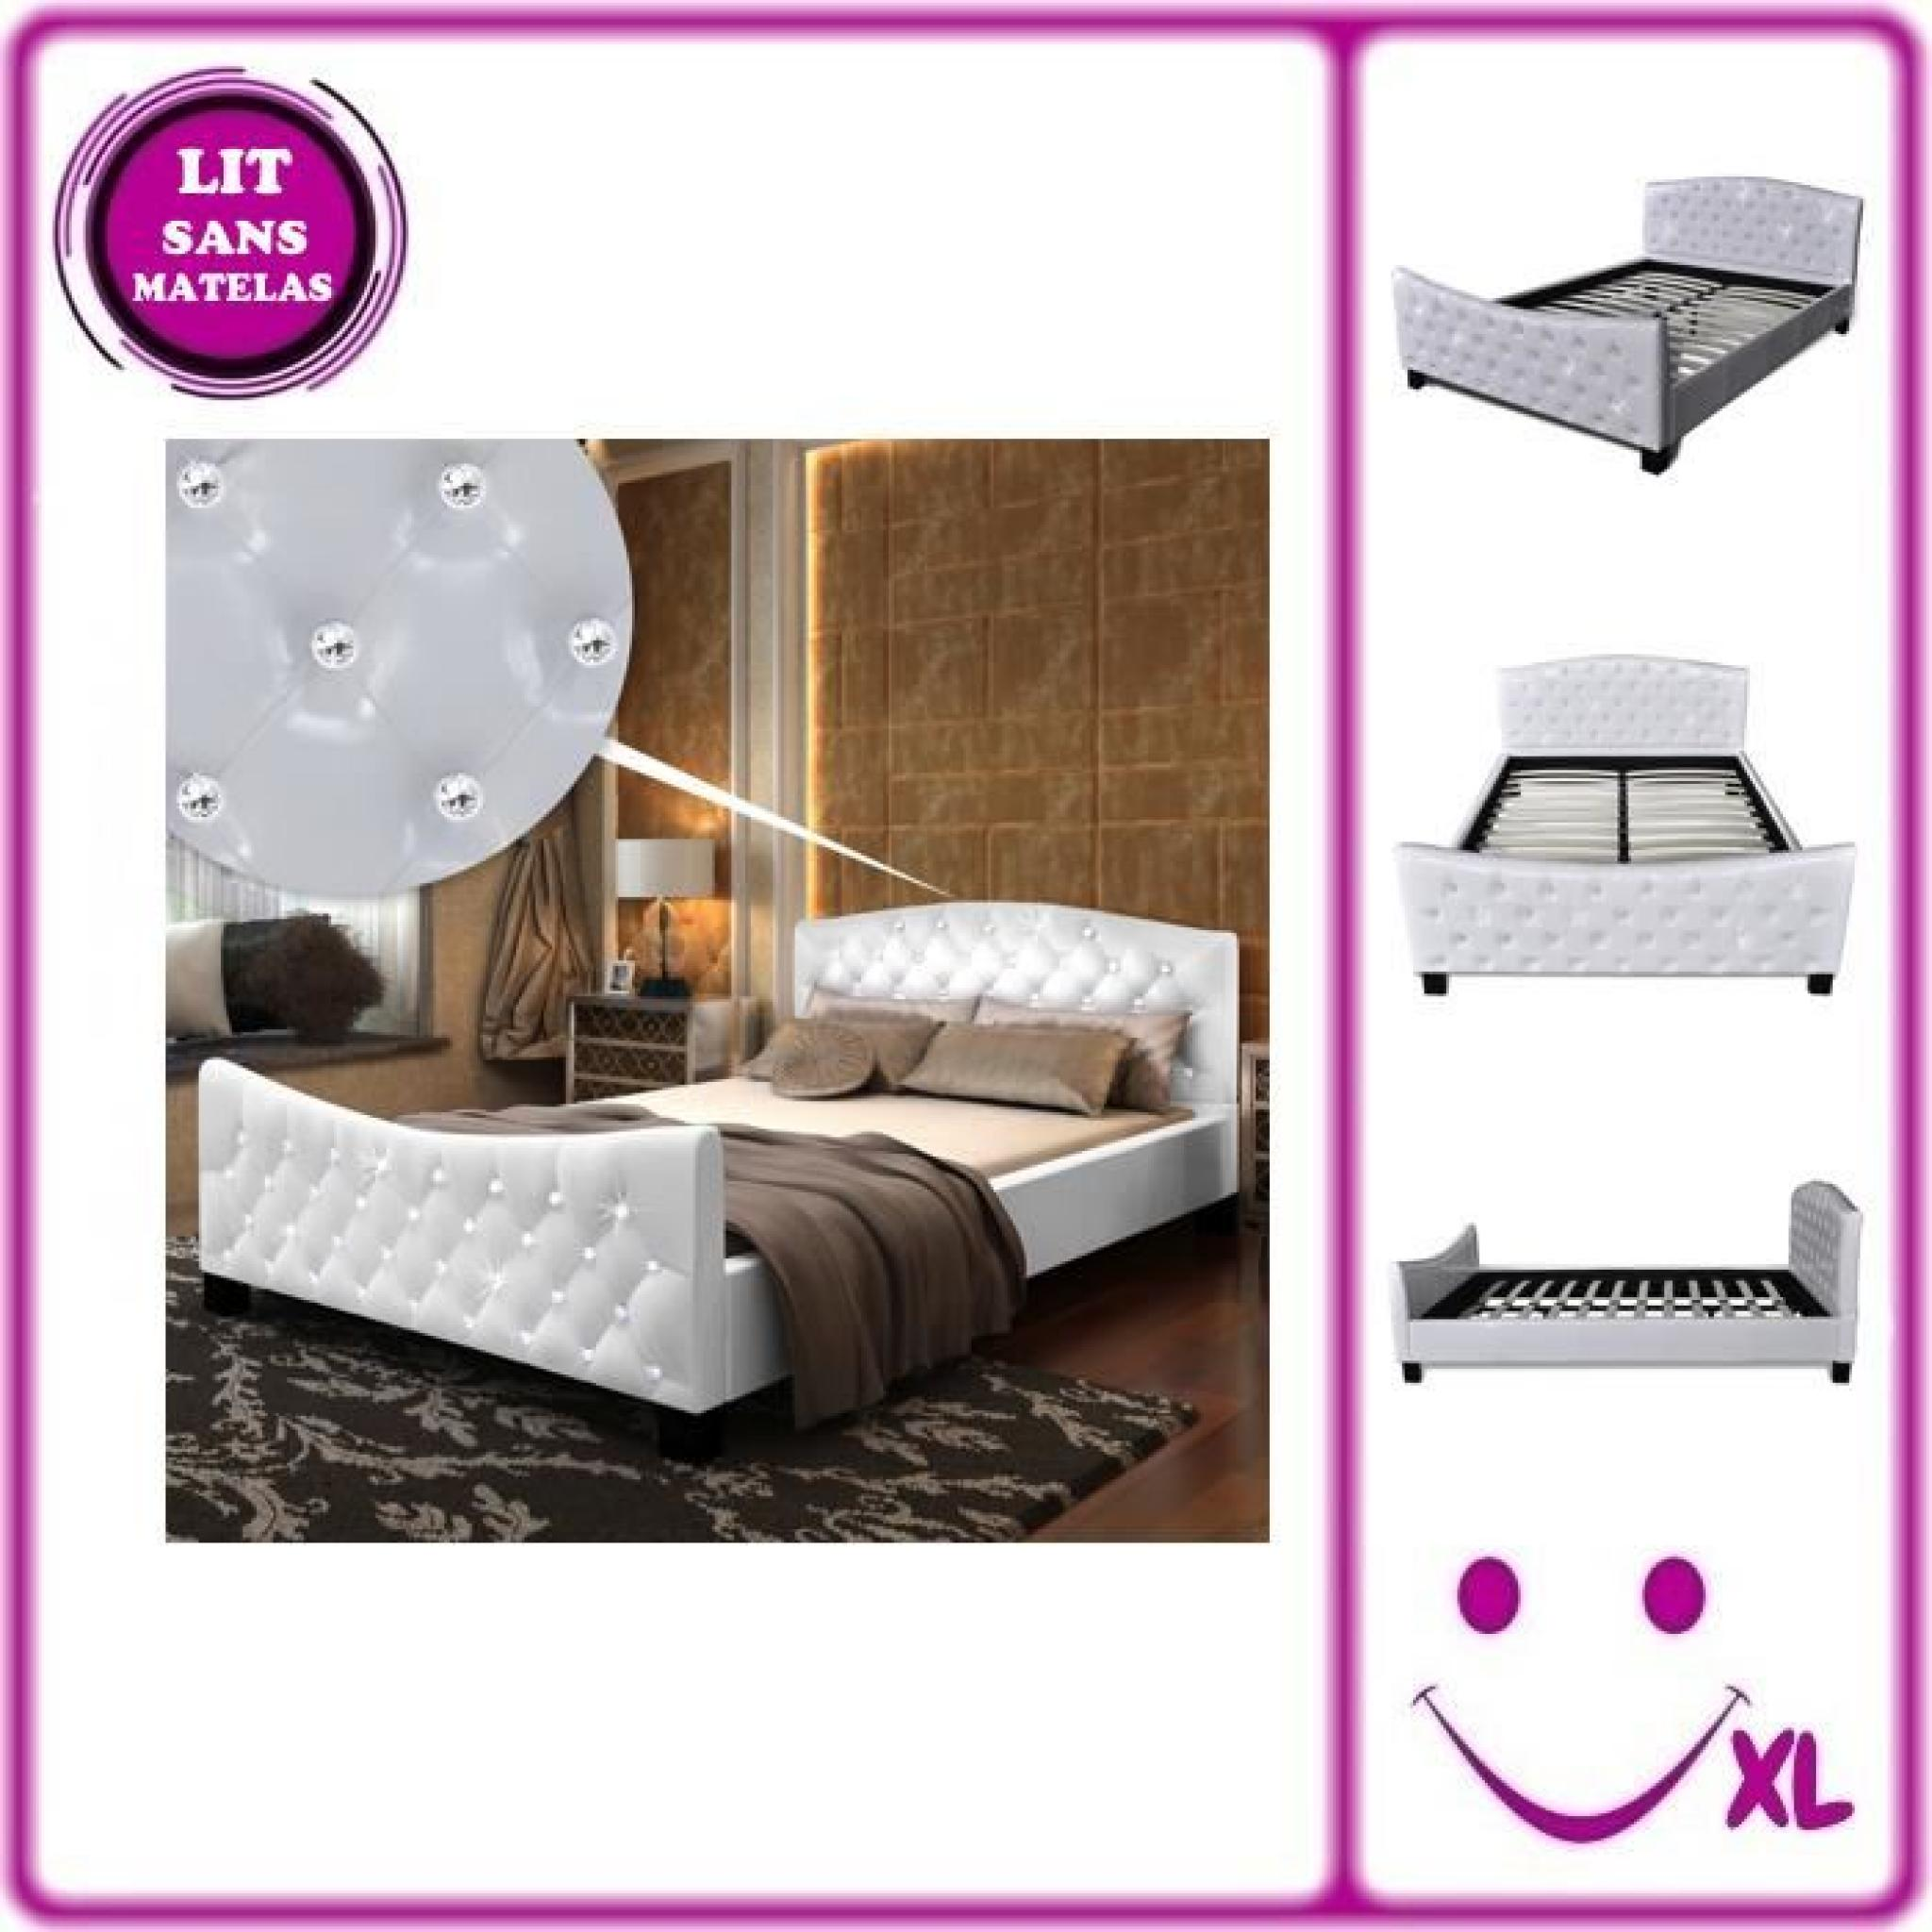 lit en simili cuir avec boutons en cristal acrylique 140x200cm blanc achat vente lit pas cher. Black Bedroom Furniture Sets. Home Design Ideas